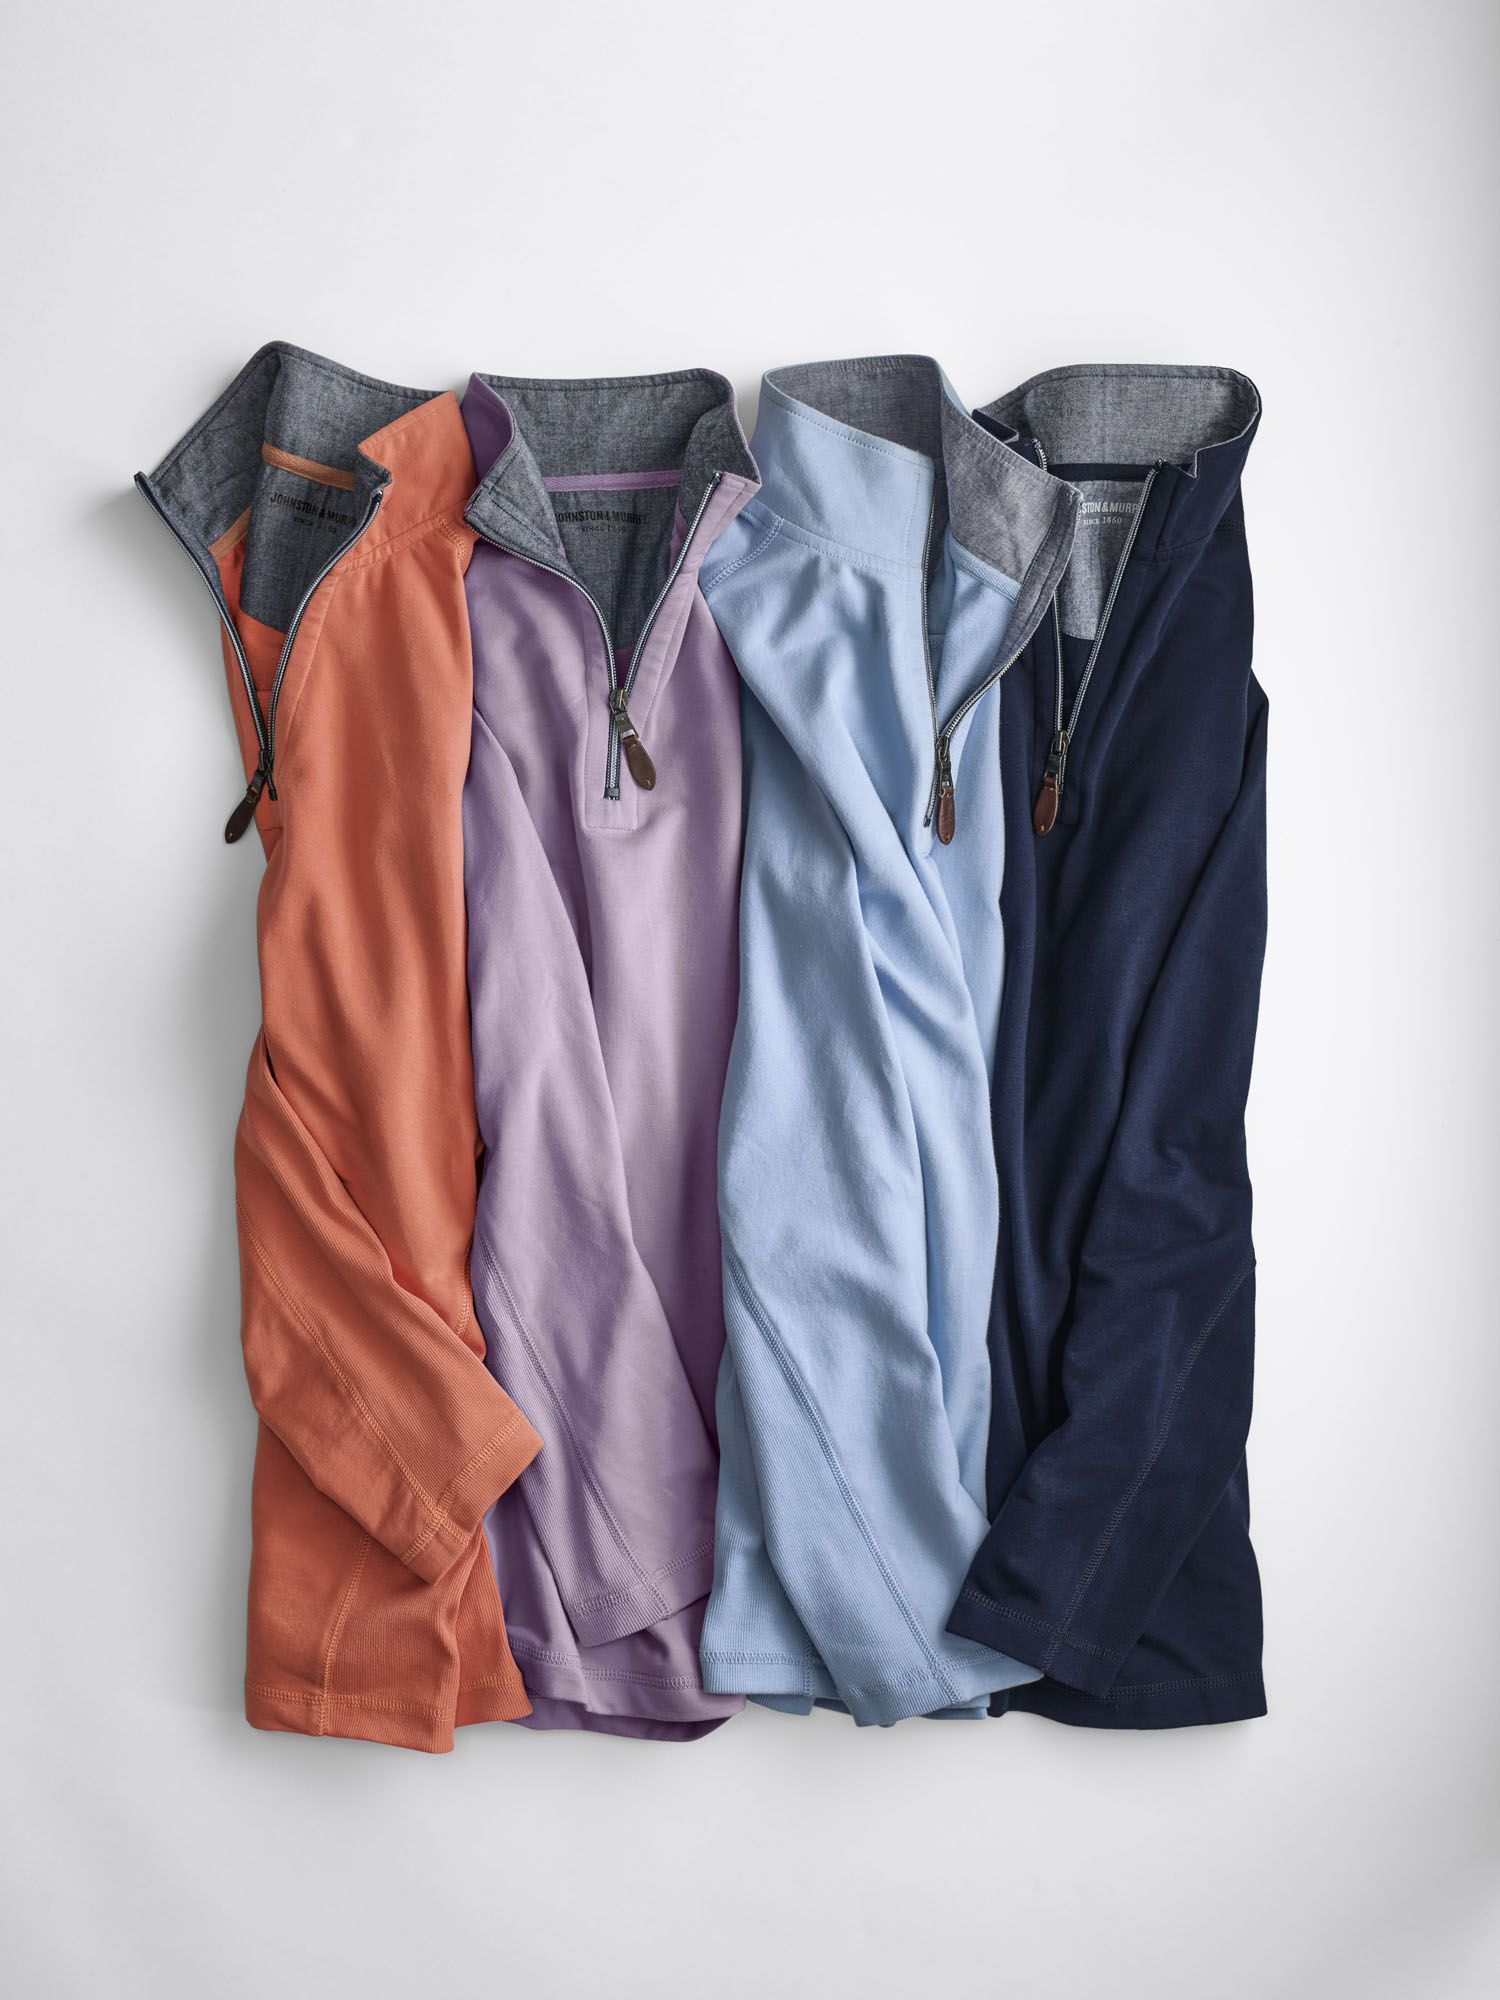 Quarter-Zip Pullover: Cotton-blend baby French terry is smooth outside, textured inside and washed for extra softness.